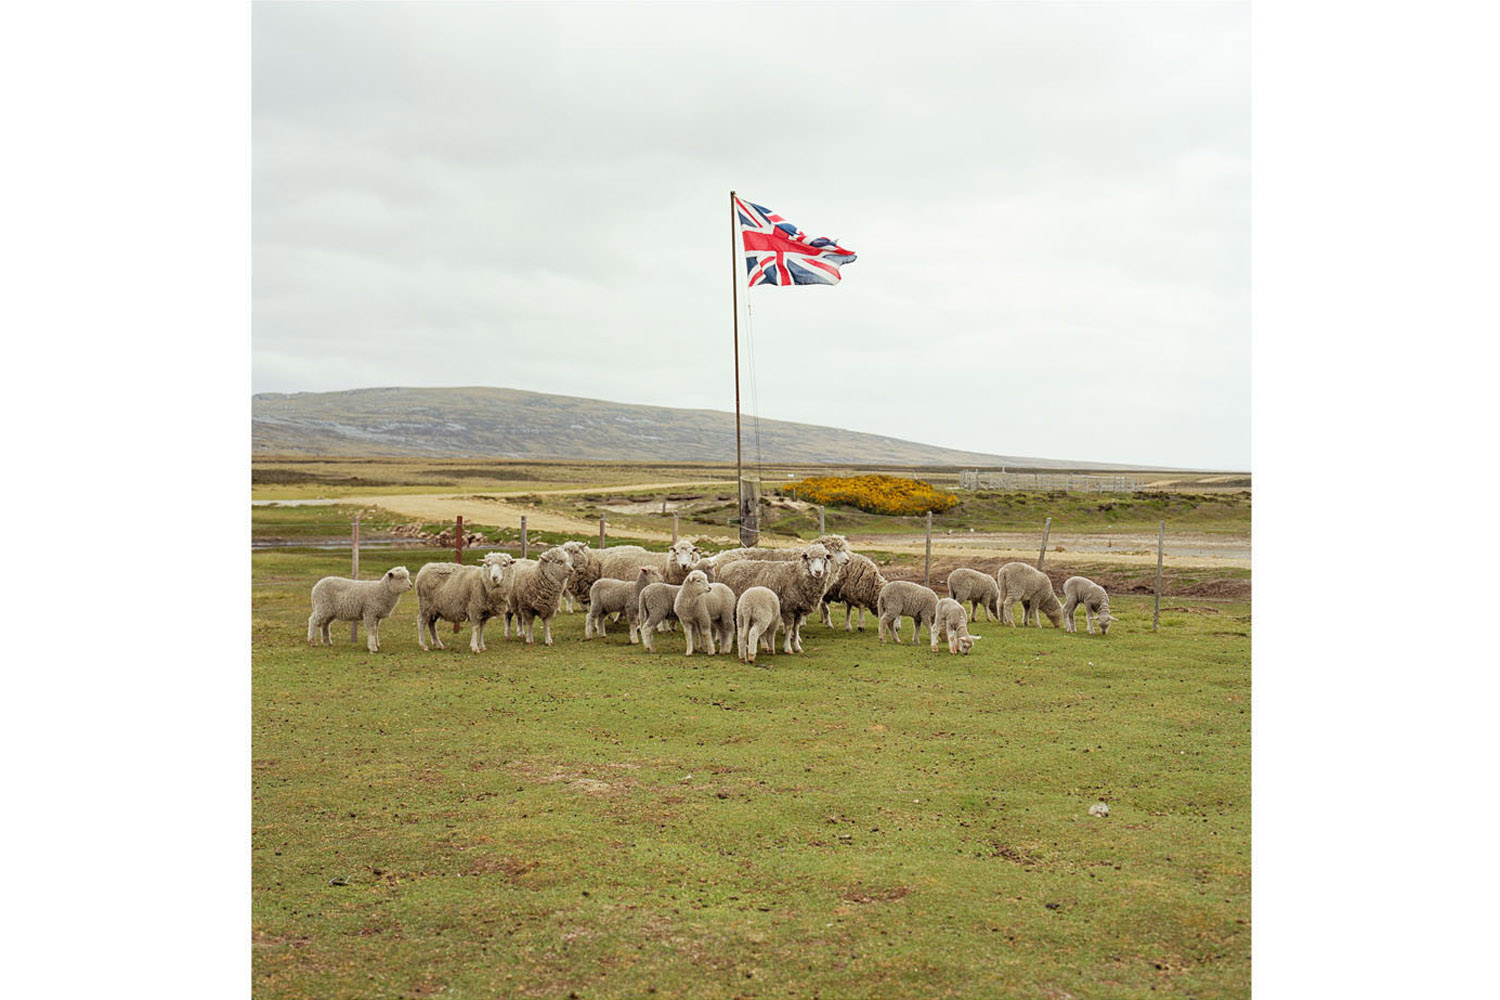 Sheep wait to be shorn while standing under the Union Jack flag, Long Island Farm, East Falkland, Falkland Islands. Farmland on the Falklands extends to well over 1 million hectares, carrying approximately 600,000 sheep. Before 1979 there were 36 farms in the Islands, with wealthy owners living back in the UK. As a result of Government policy, the land was split up to create a total of 88 individual smaller farms, and are mostly run as family units.